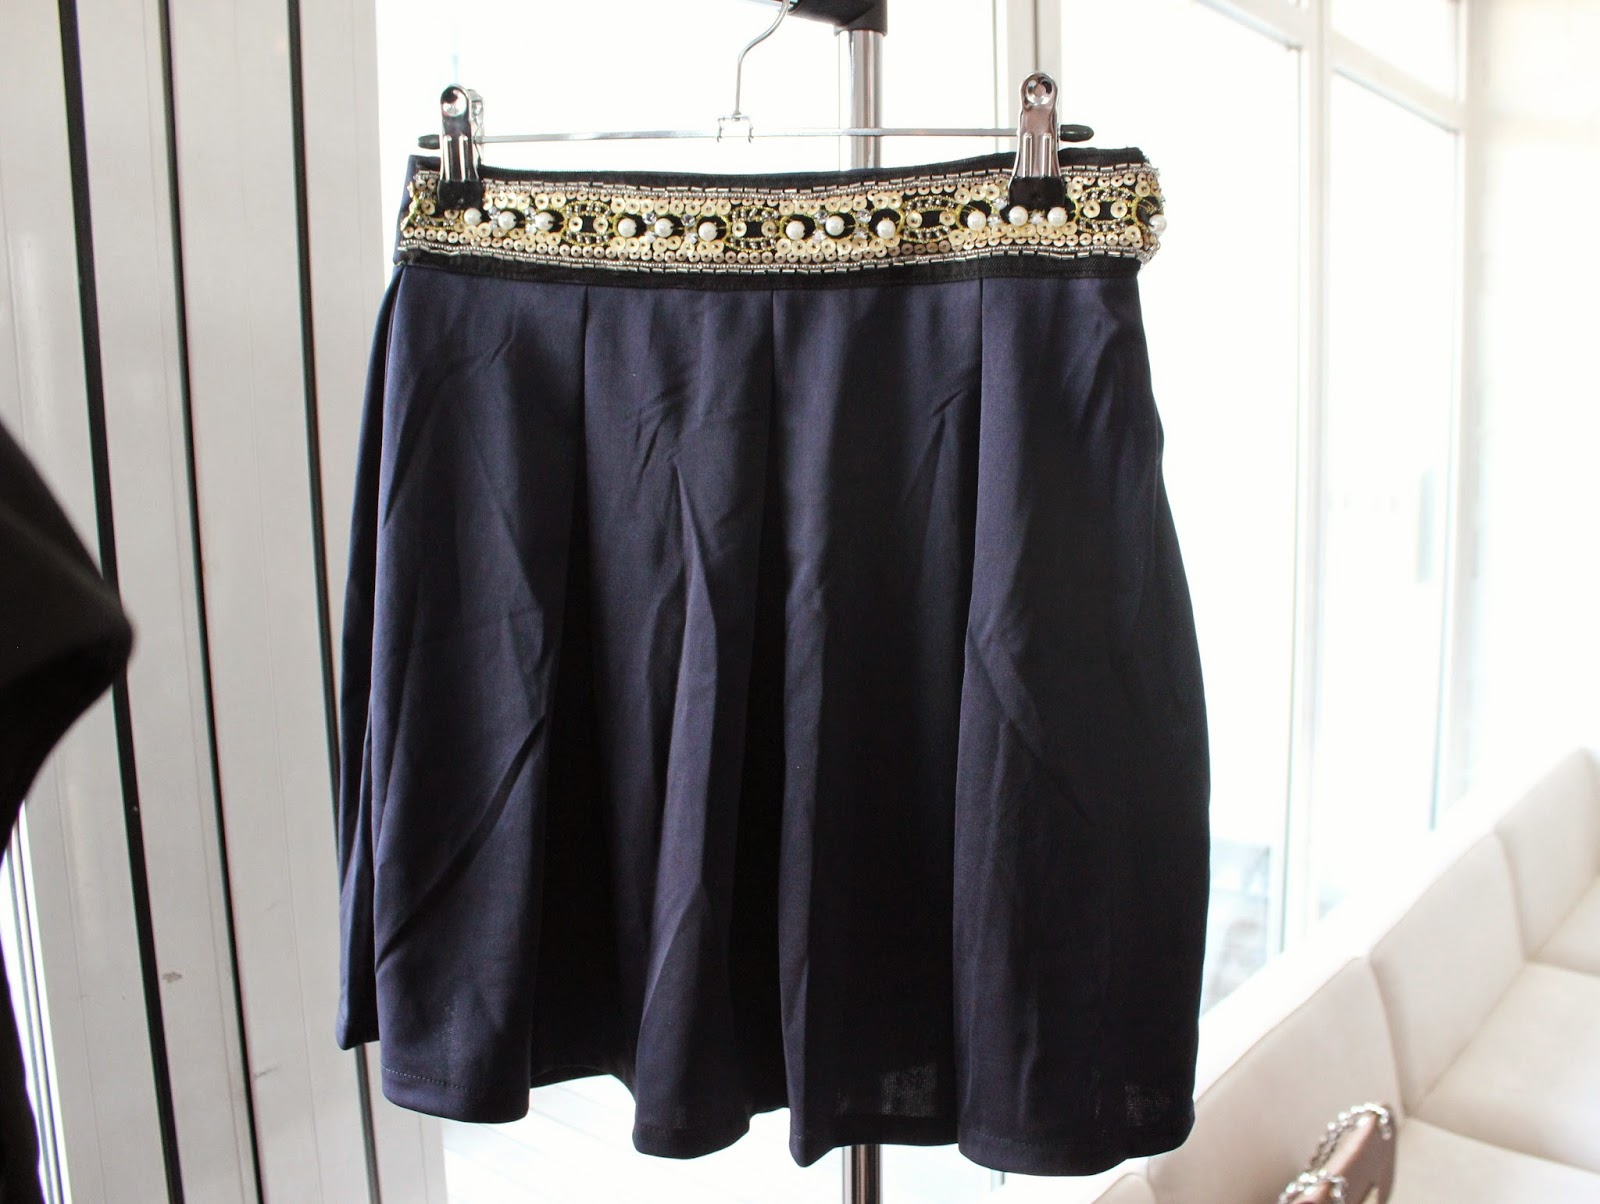 bloggers-love-fashion-week-event-skirt-clothes